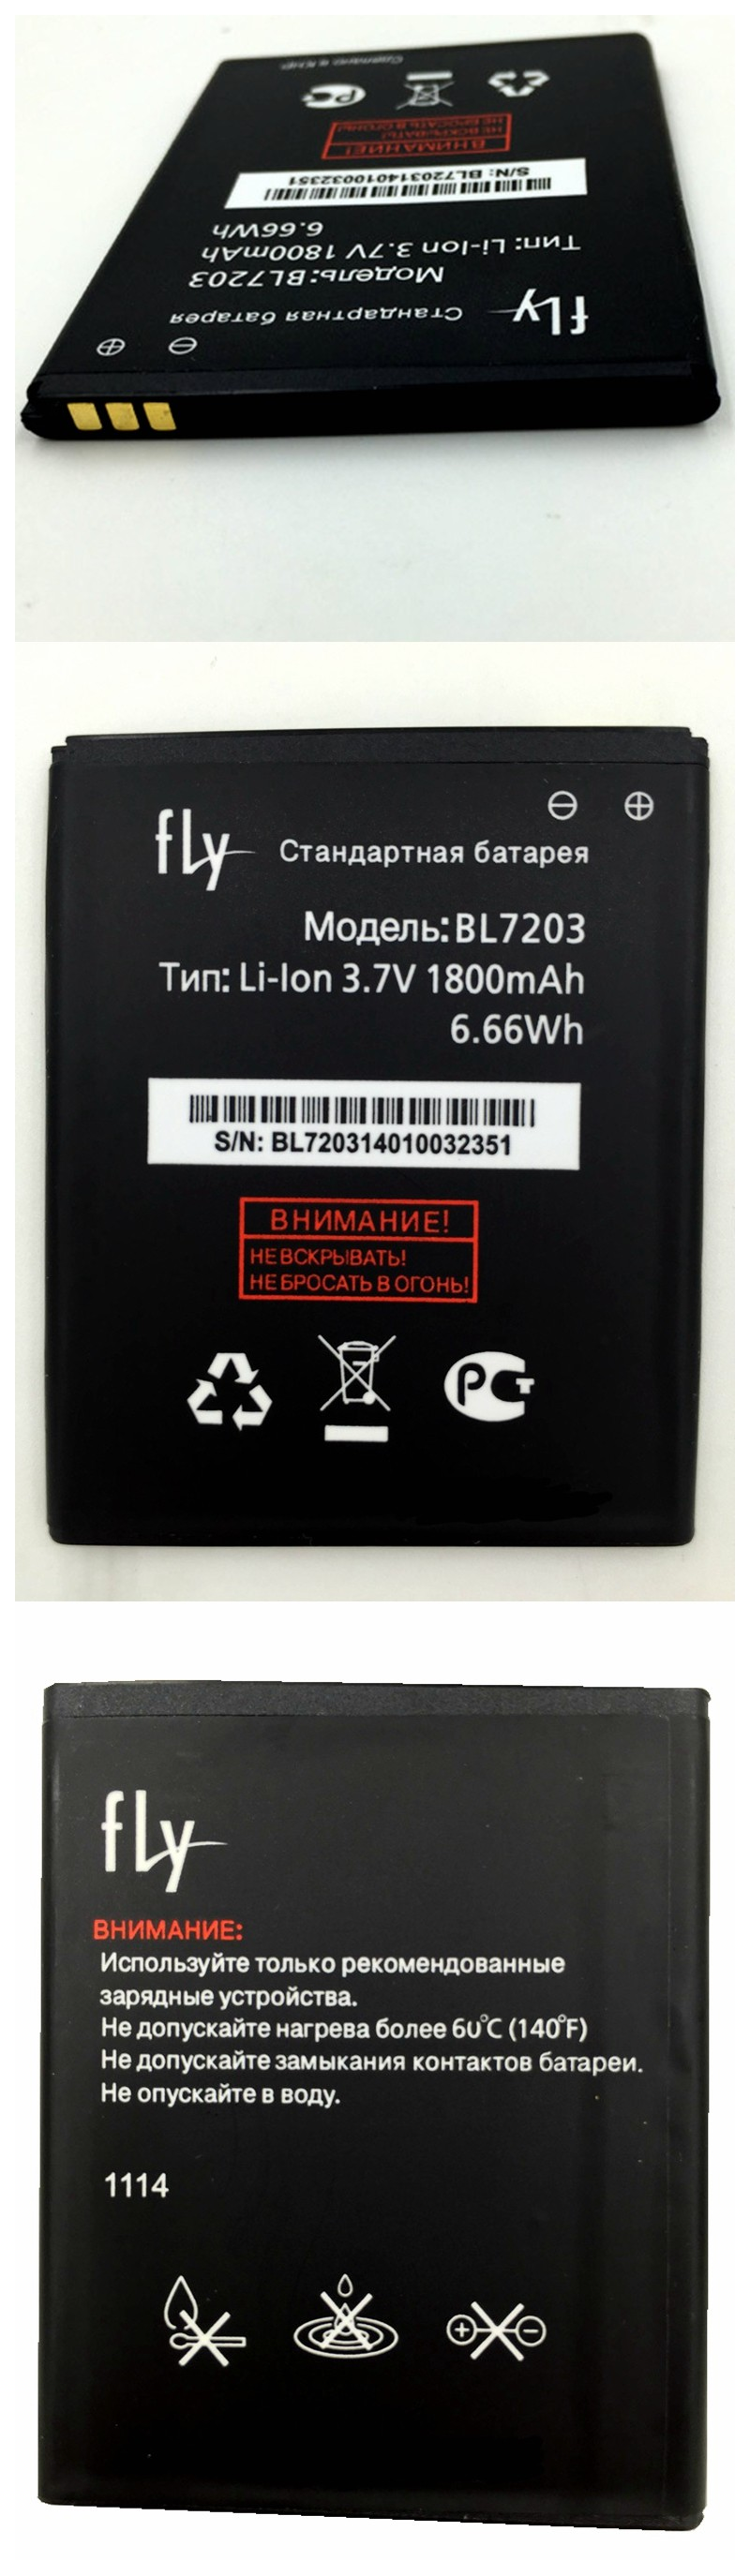 BL3805 1750mAh High quality mobile phone battery for FLY IQ4402 IQ4404 battery